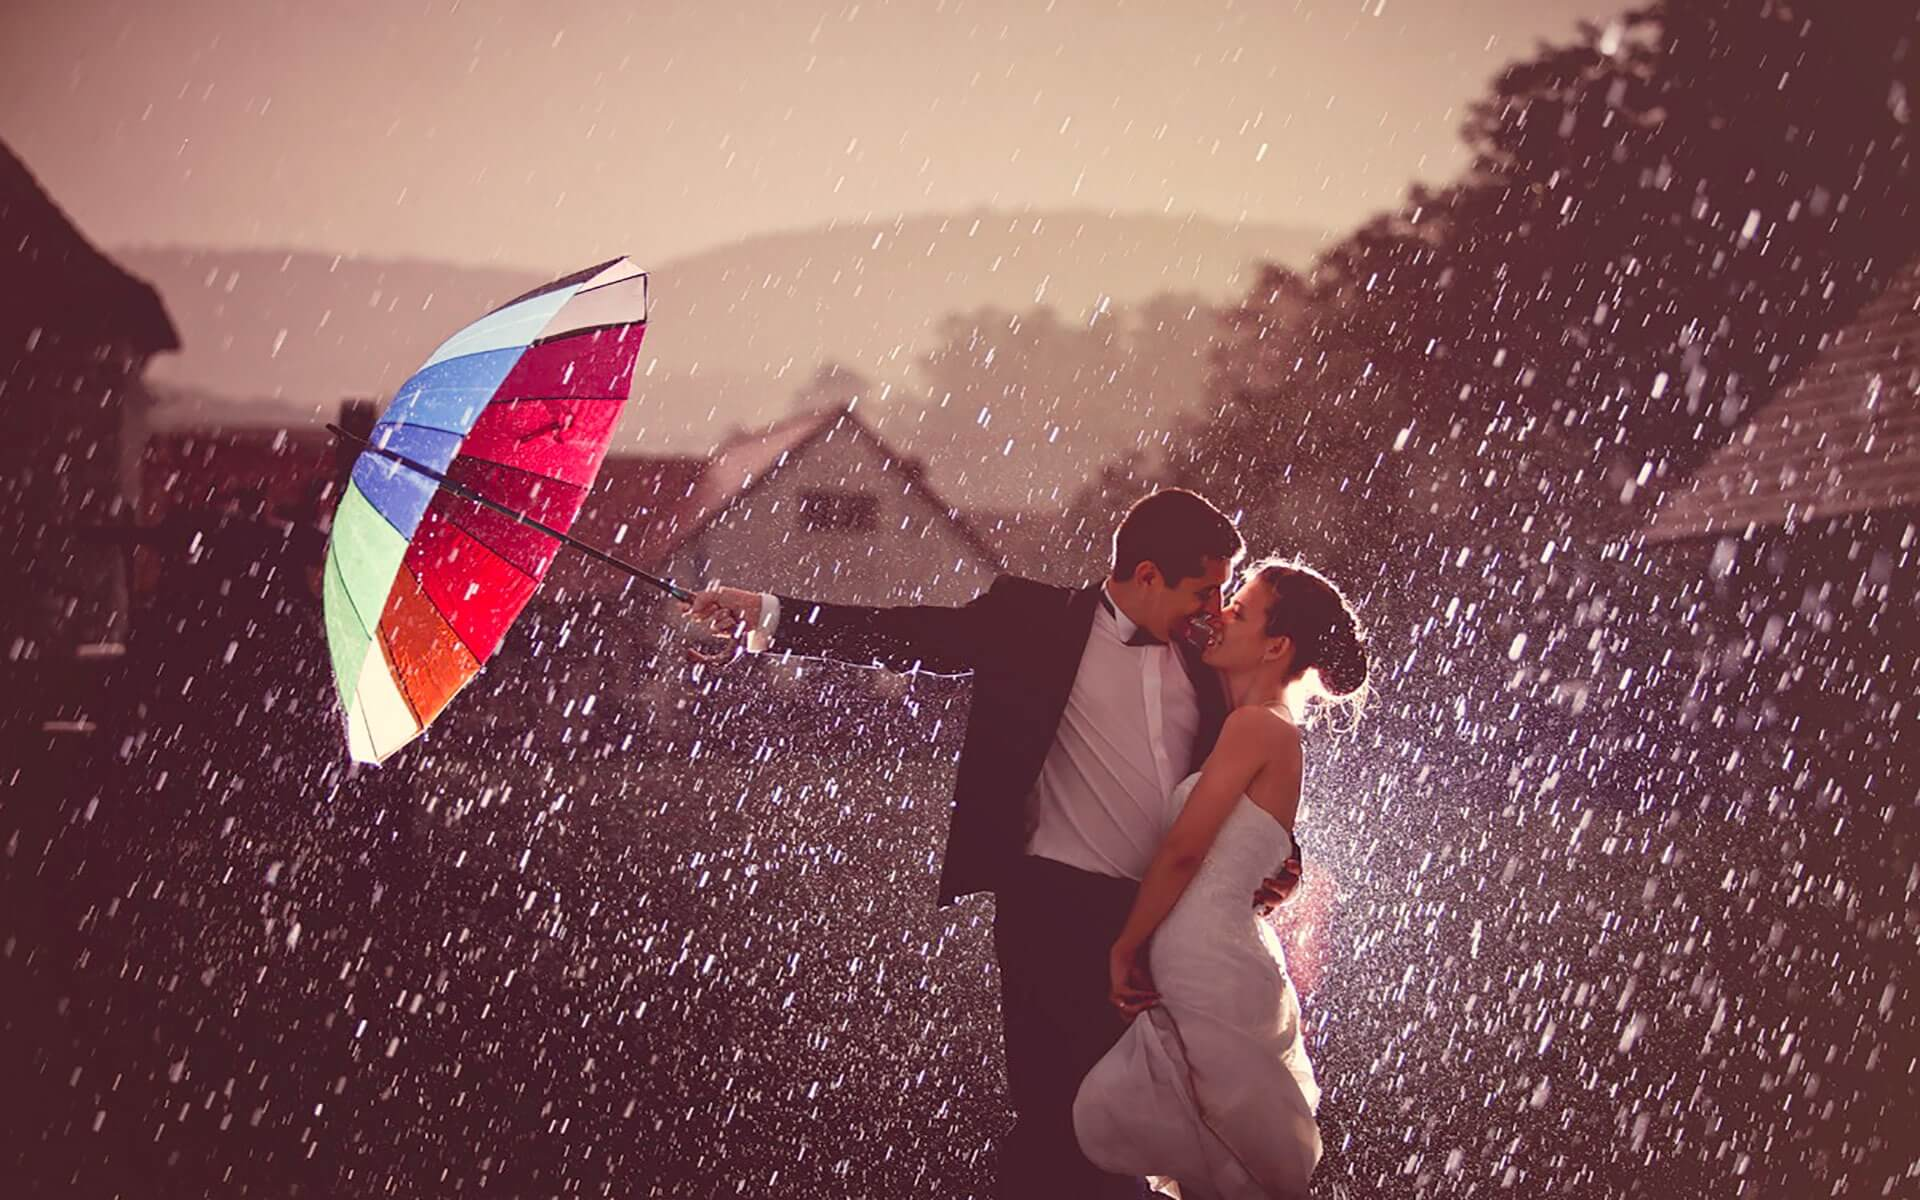 Love Wallpaper In Rain : cute HD Love and Romance Pictures Of couples In Rain EntertainmentMesh